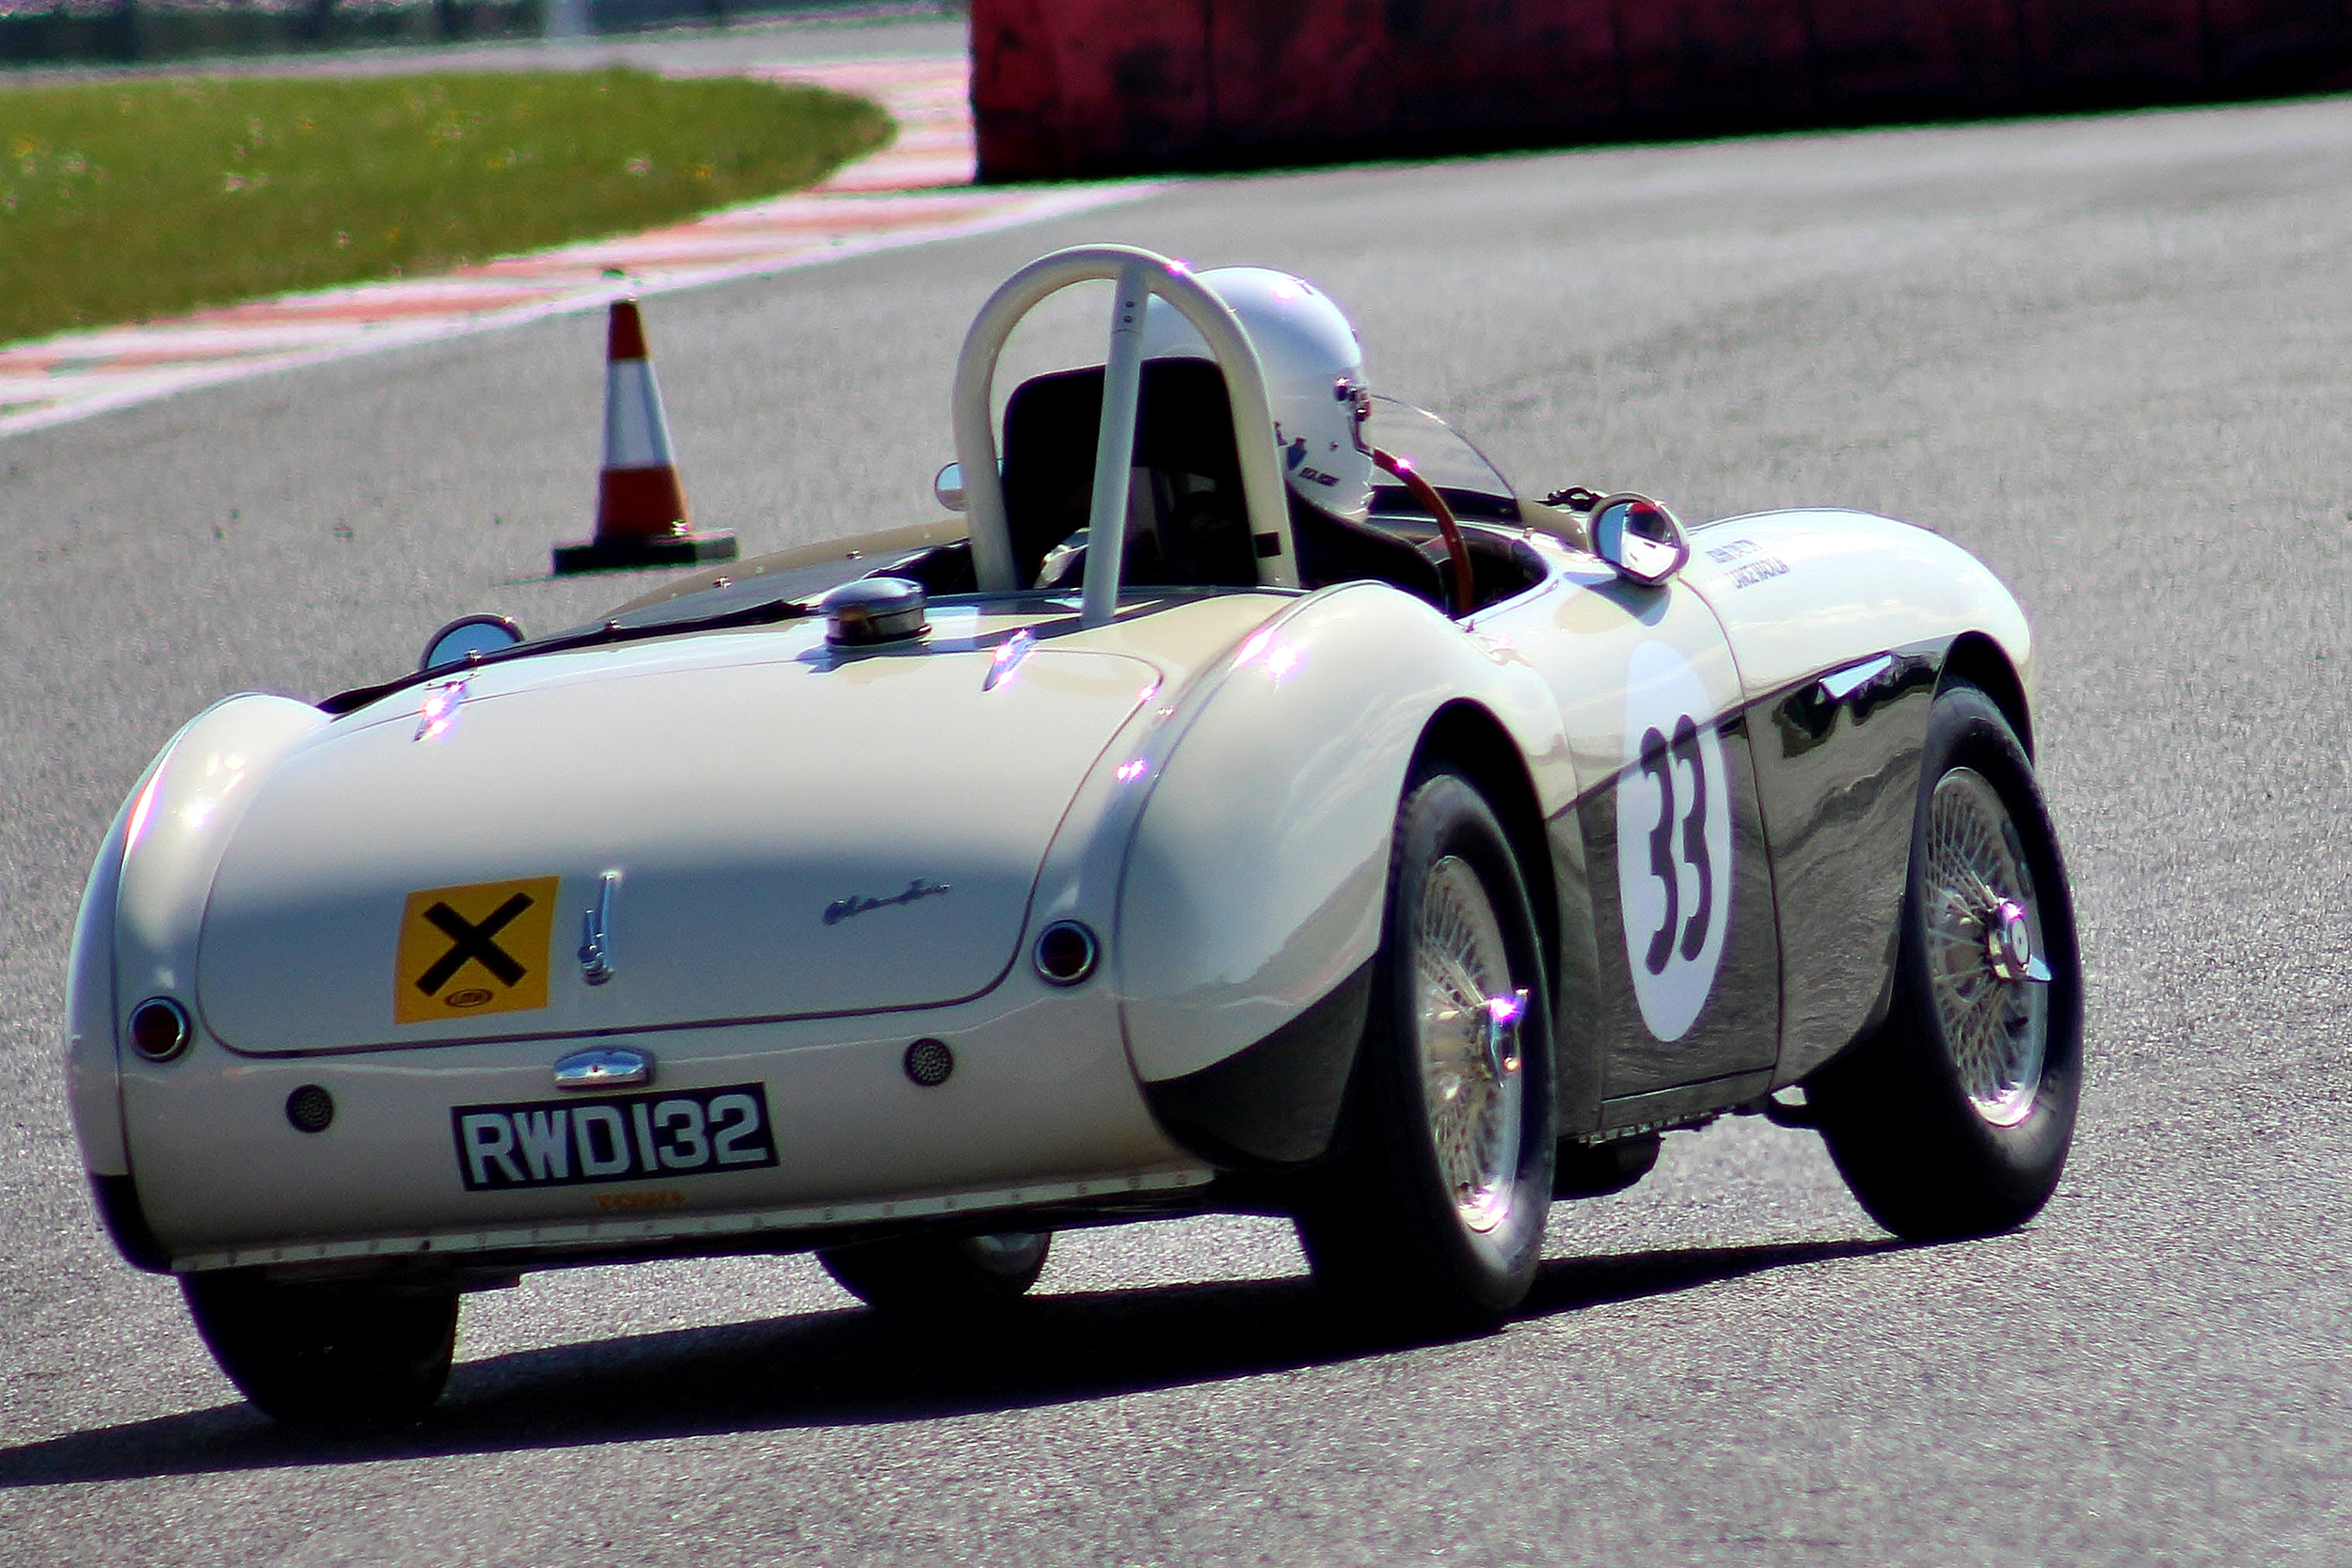 patrick rignell took his lovely austin healey 100s to 13th overall                 photo - bob bull, tripos media